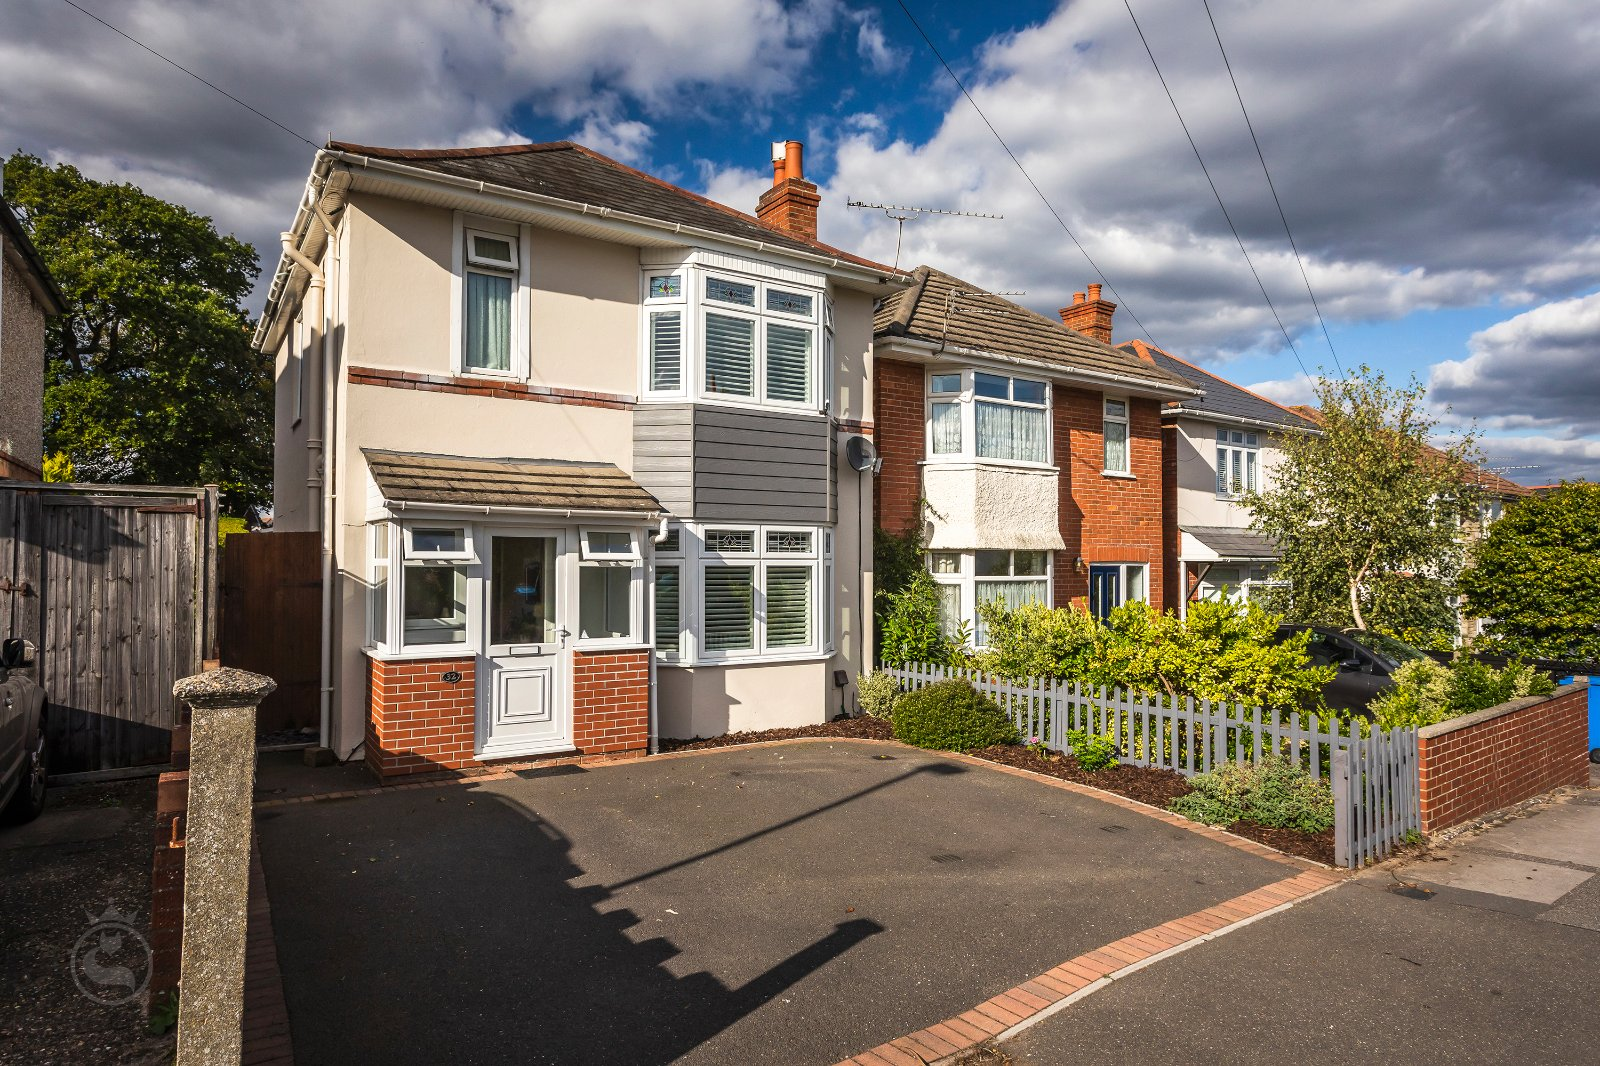 3 bed house for sale in Wroxham Road, Branksome  - Property Image 2